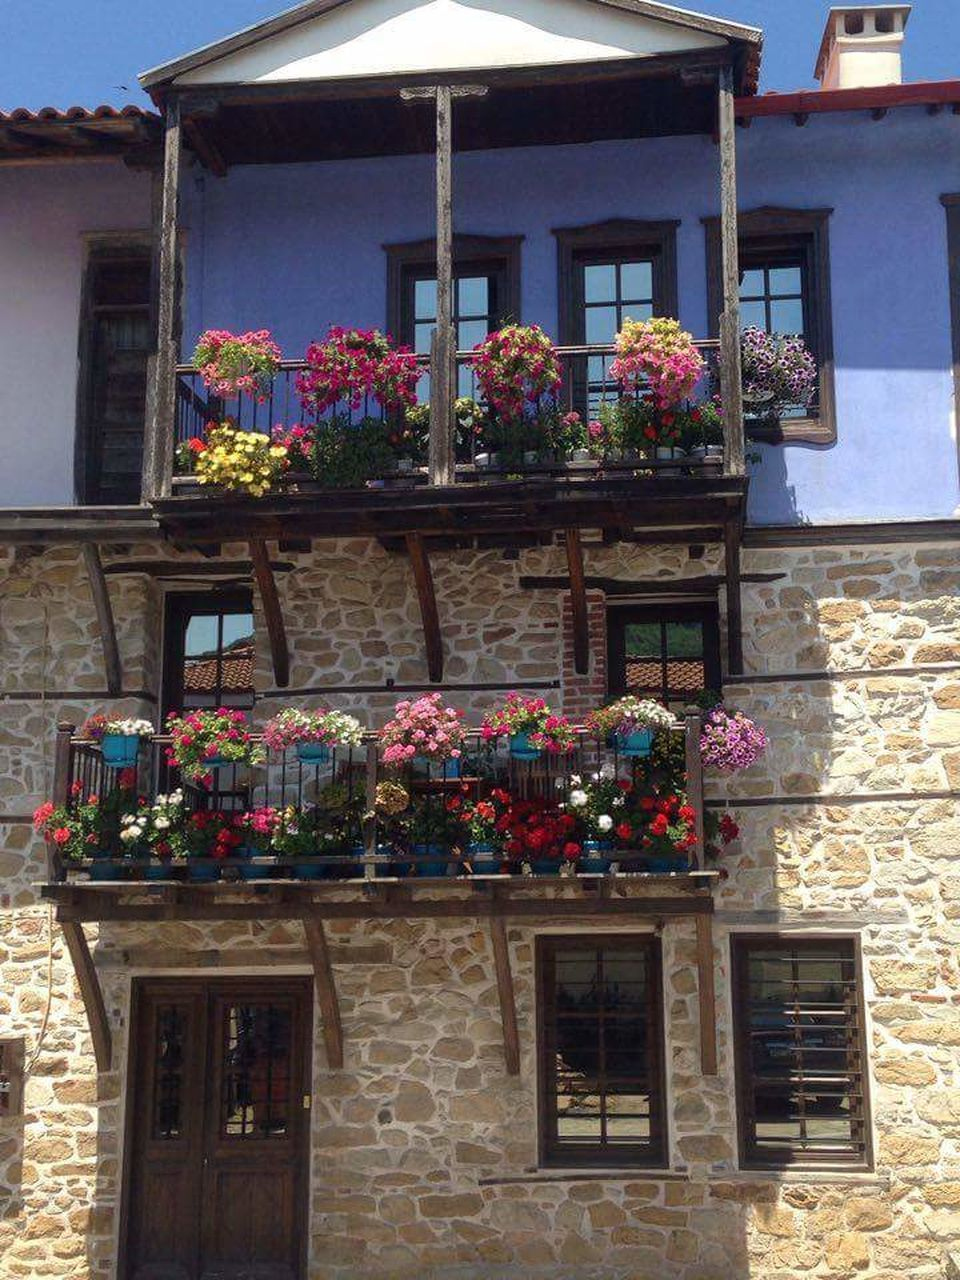 flower, potted plant, building exterior, architecture, multi colored, built structure, outdoors, plant, window, window box, day, house, growth, no people, fragility, nature, flower shop, beauty in nature, freshness